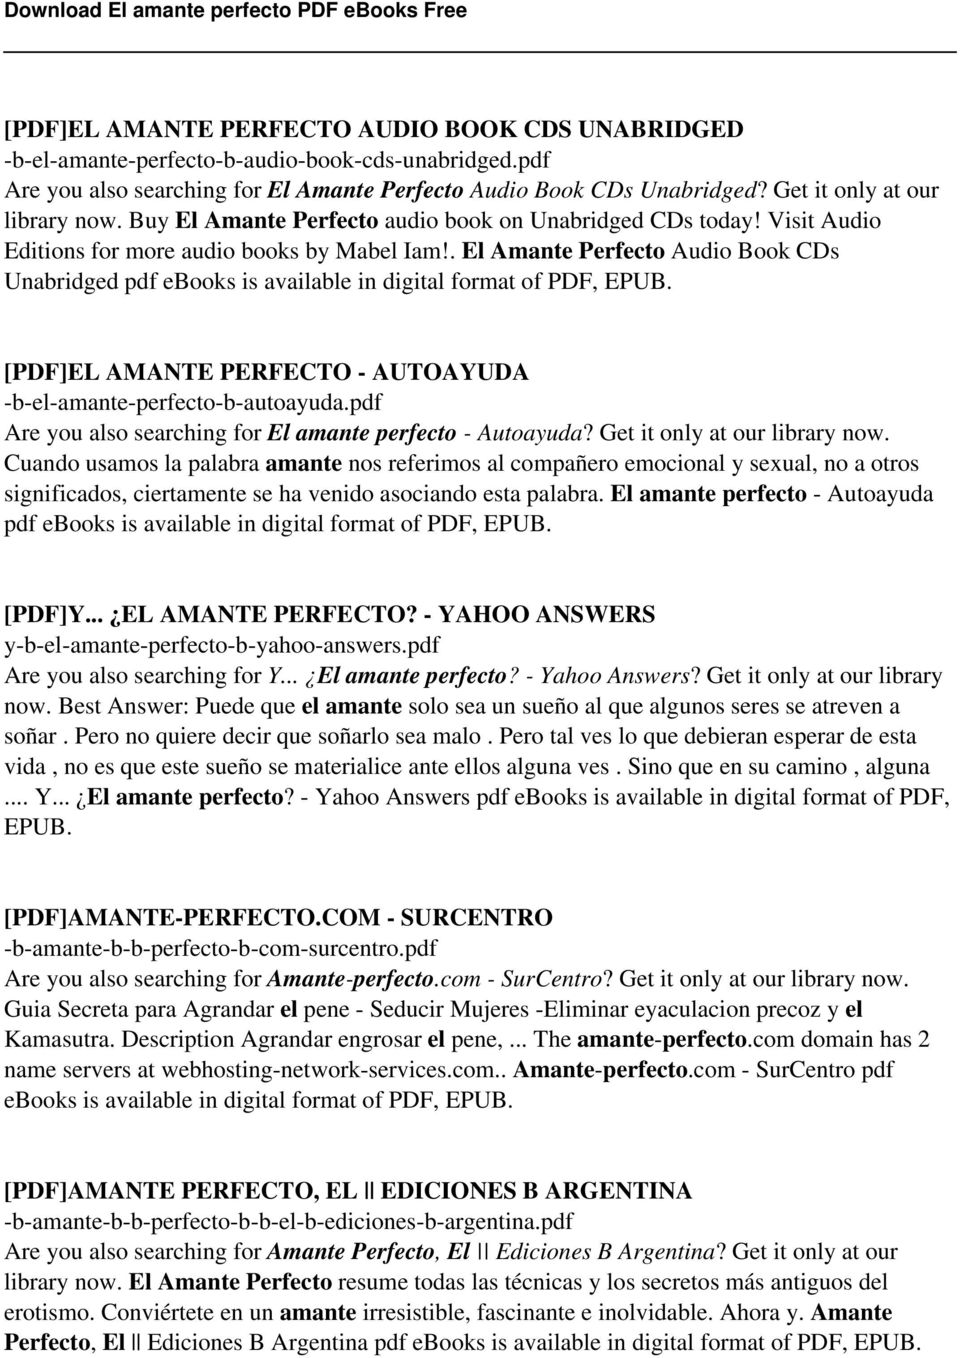 El amante perfecto pdf pdf el amante perfecto audio book cds unabridged pdf ebooks is available in digital format of fandeluxe Images